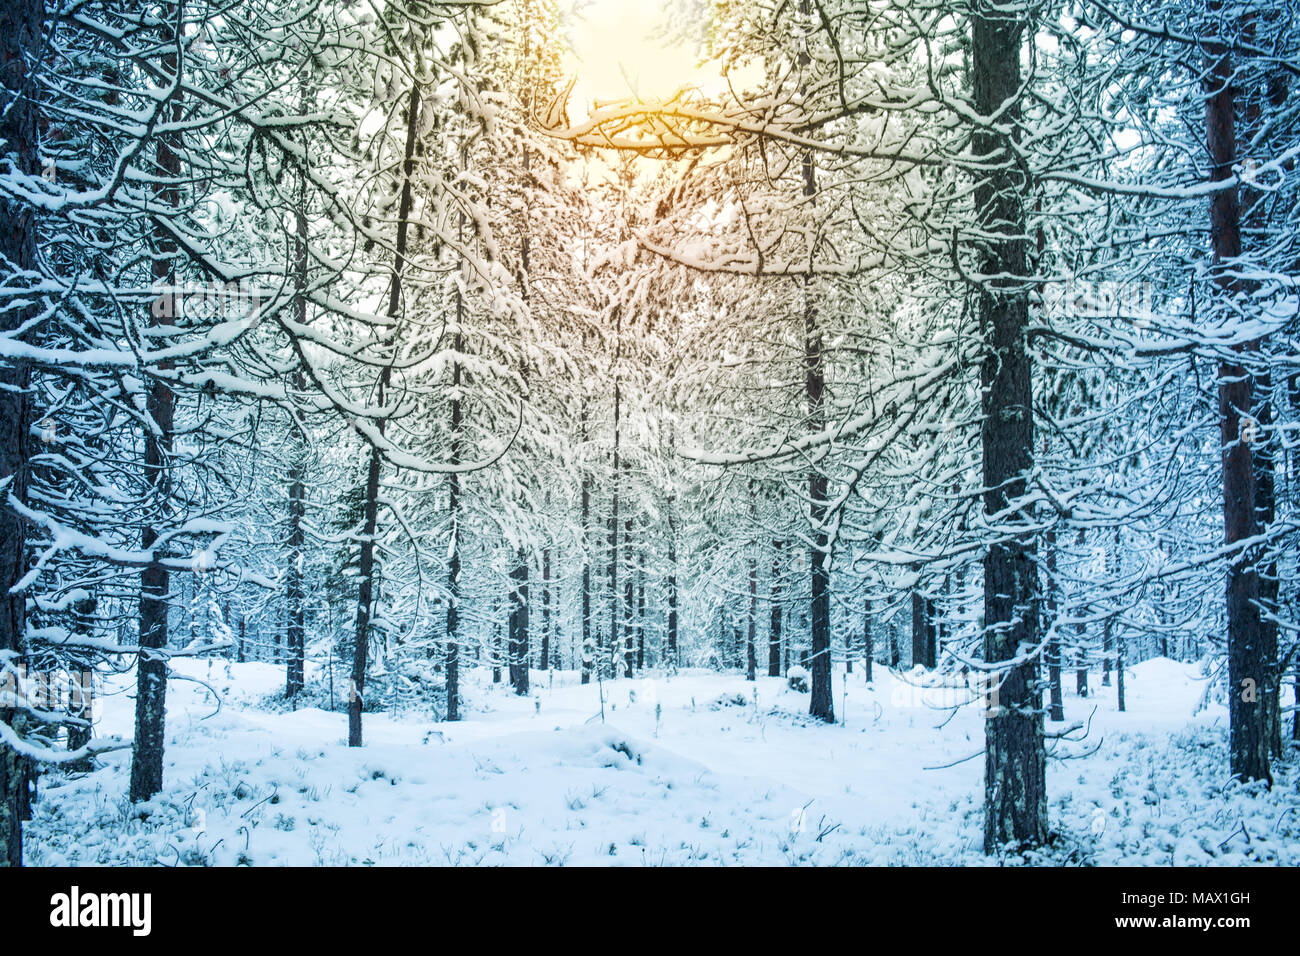 Beautiful Snowy Day With Sunlight In A Forest During Winter In Lapland Finland Christmas Greeting Card Background Stock Photo